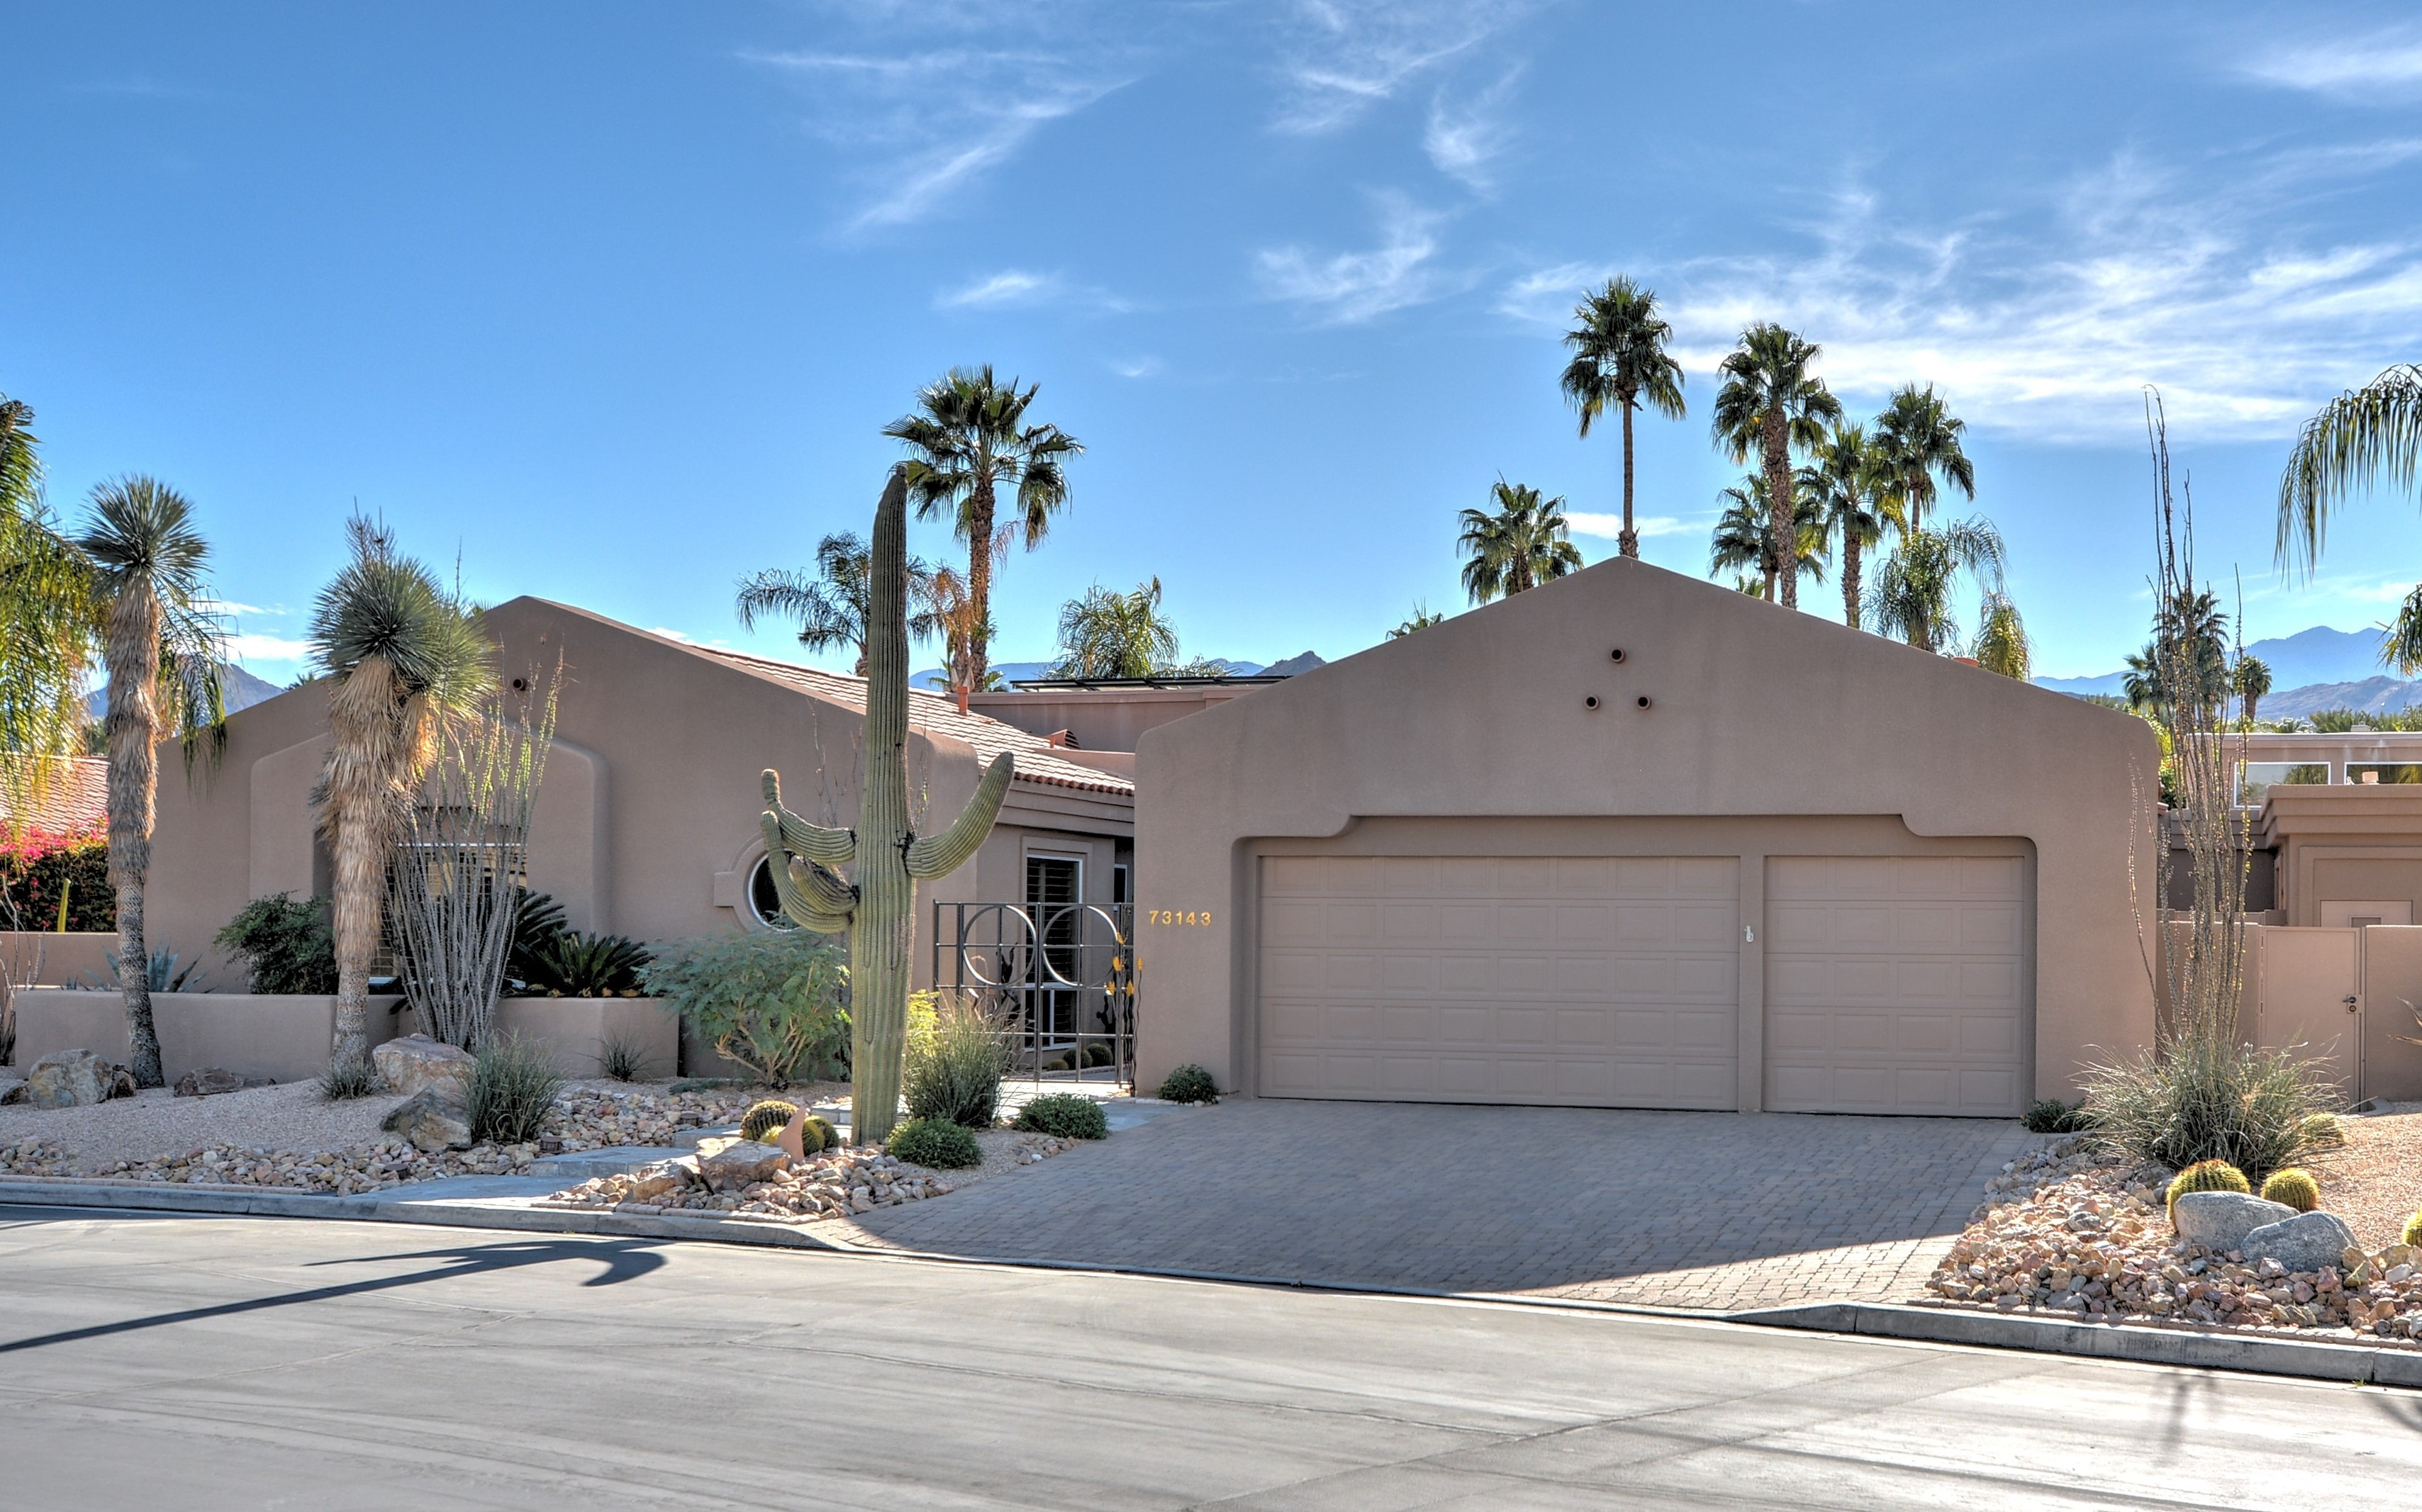 Awesome Desert Contemporary home in Palm Desert, Ca